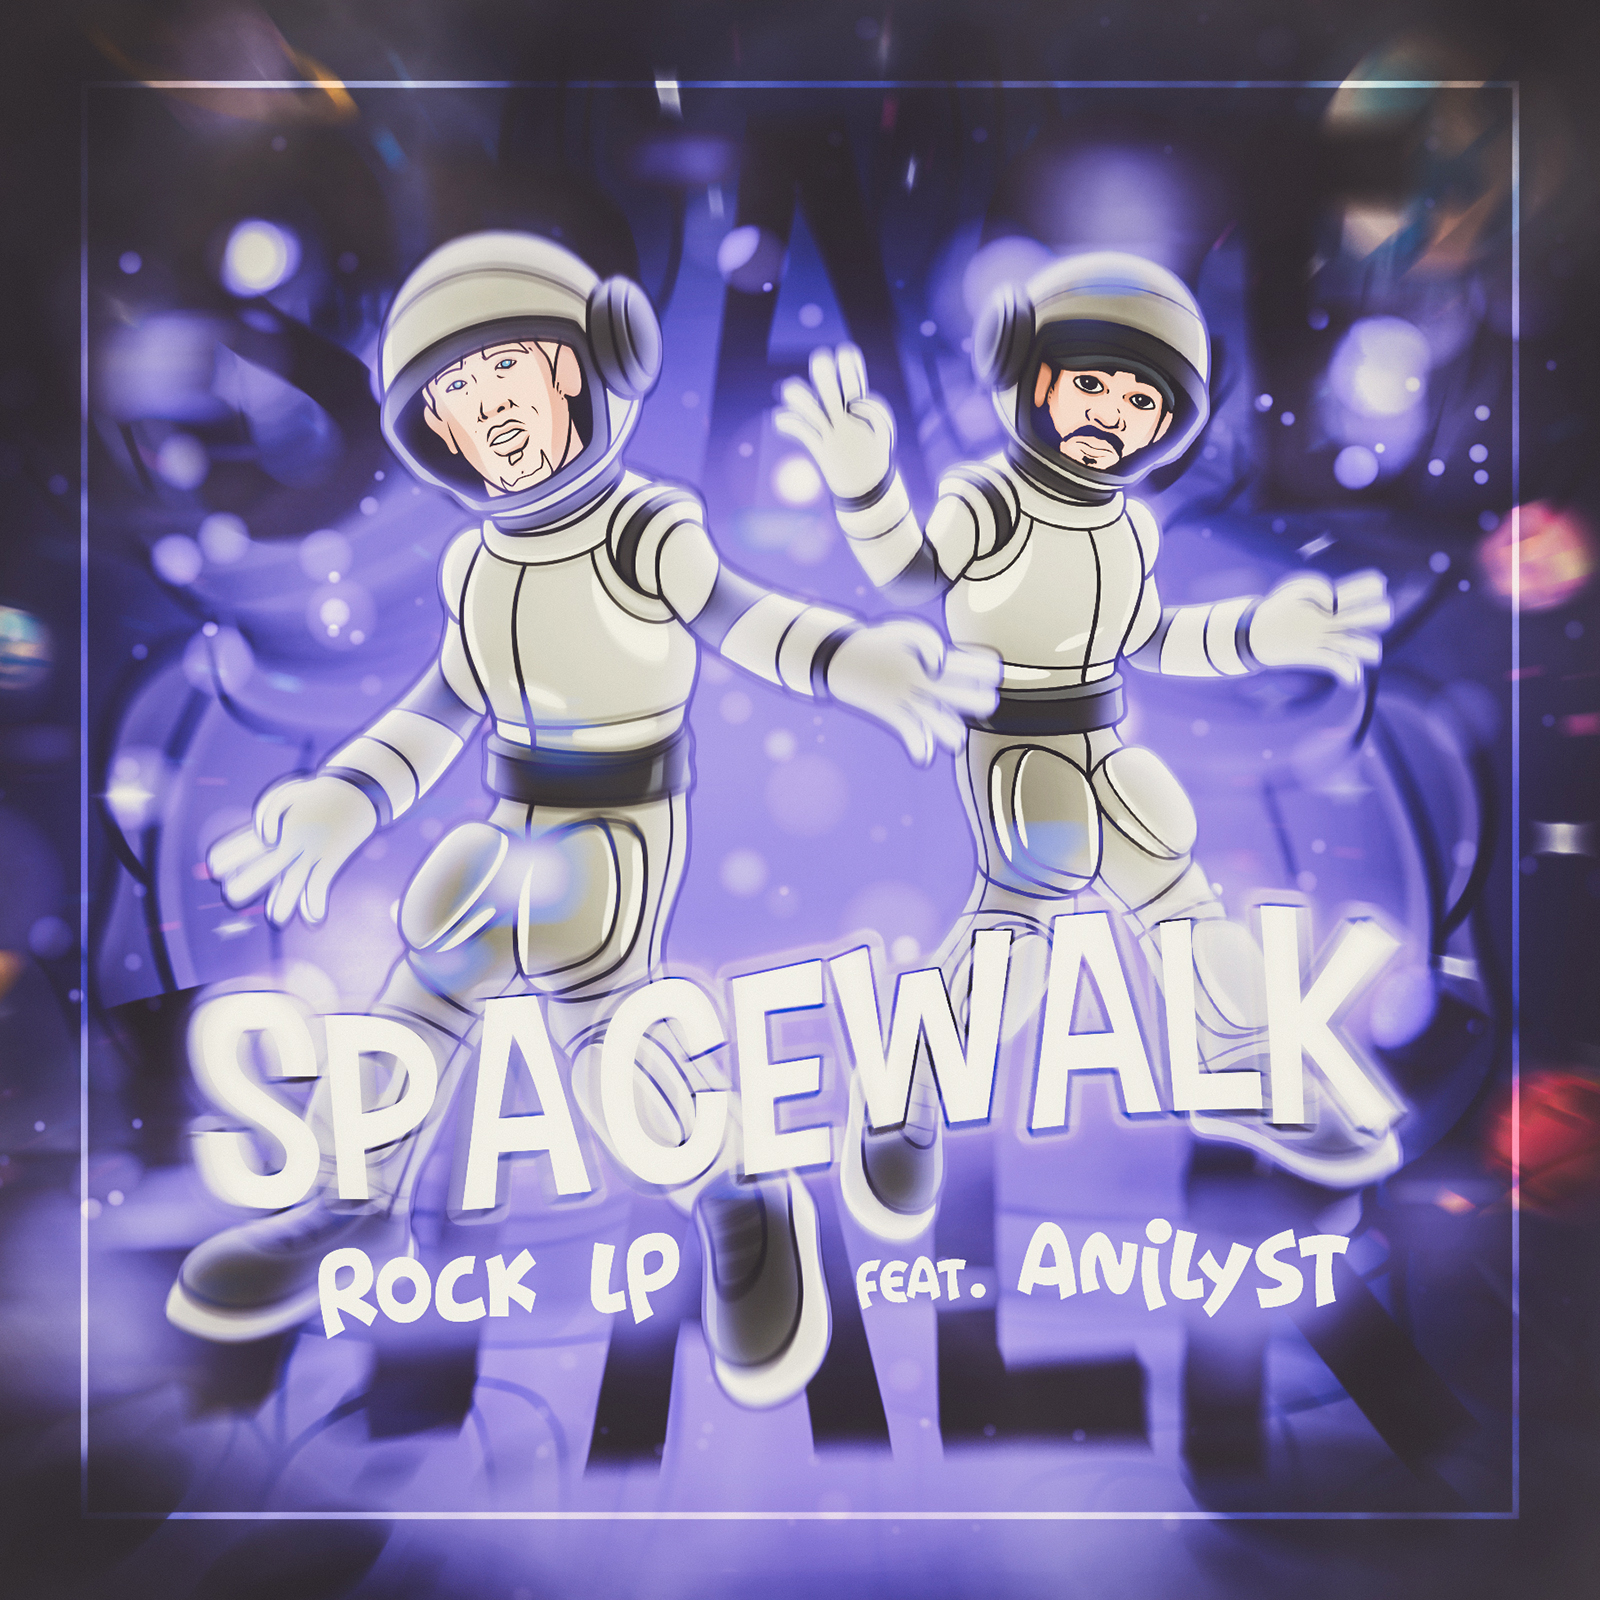 Spacewalk - Rock LP feat Anilyst